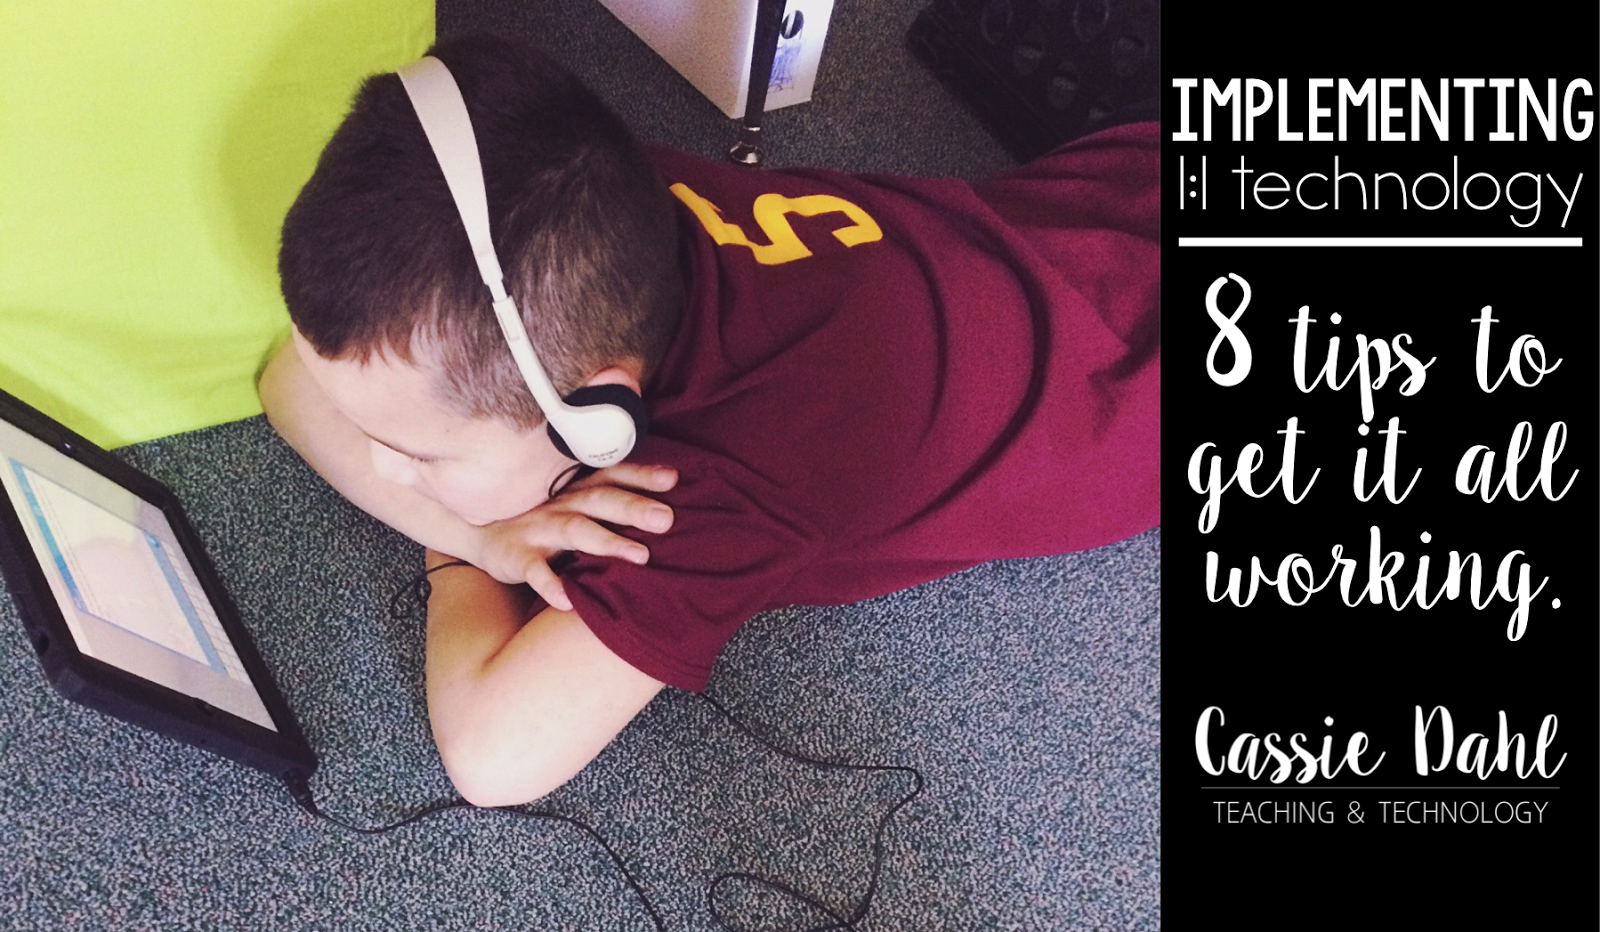 Do you have technology in your classroom? Are you struggling to figure out how to use them effectively? Are you using them just for games? Check out this post for 8 tips all about implementing devices in your classroom. Oh and there is a BONUS tip too!